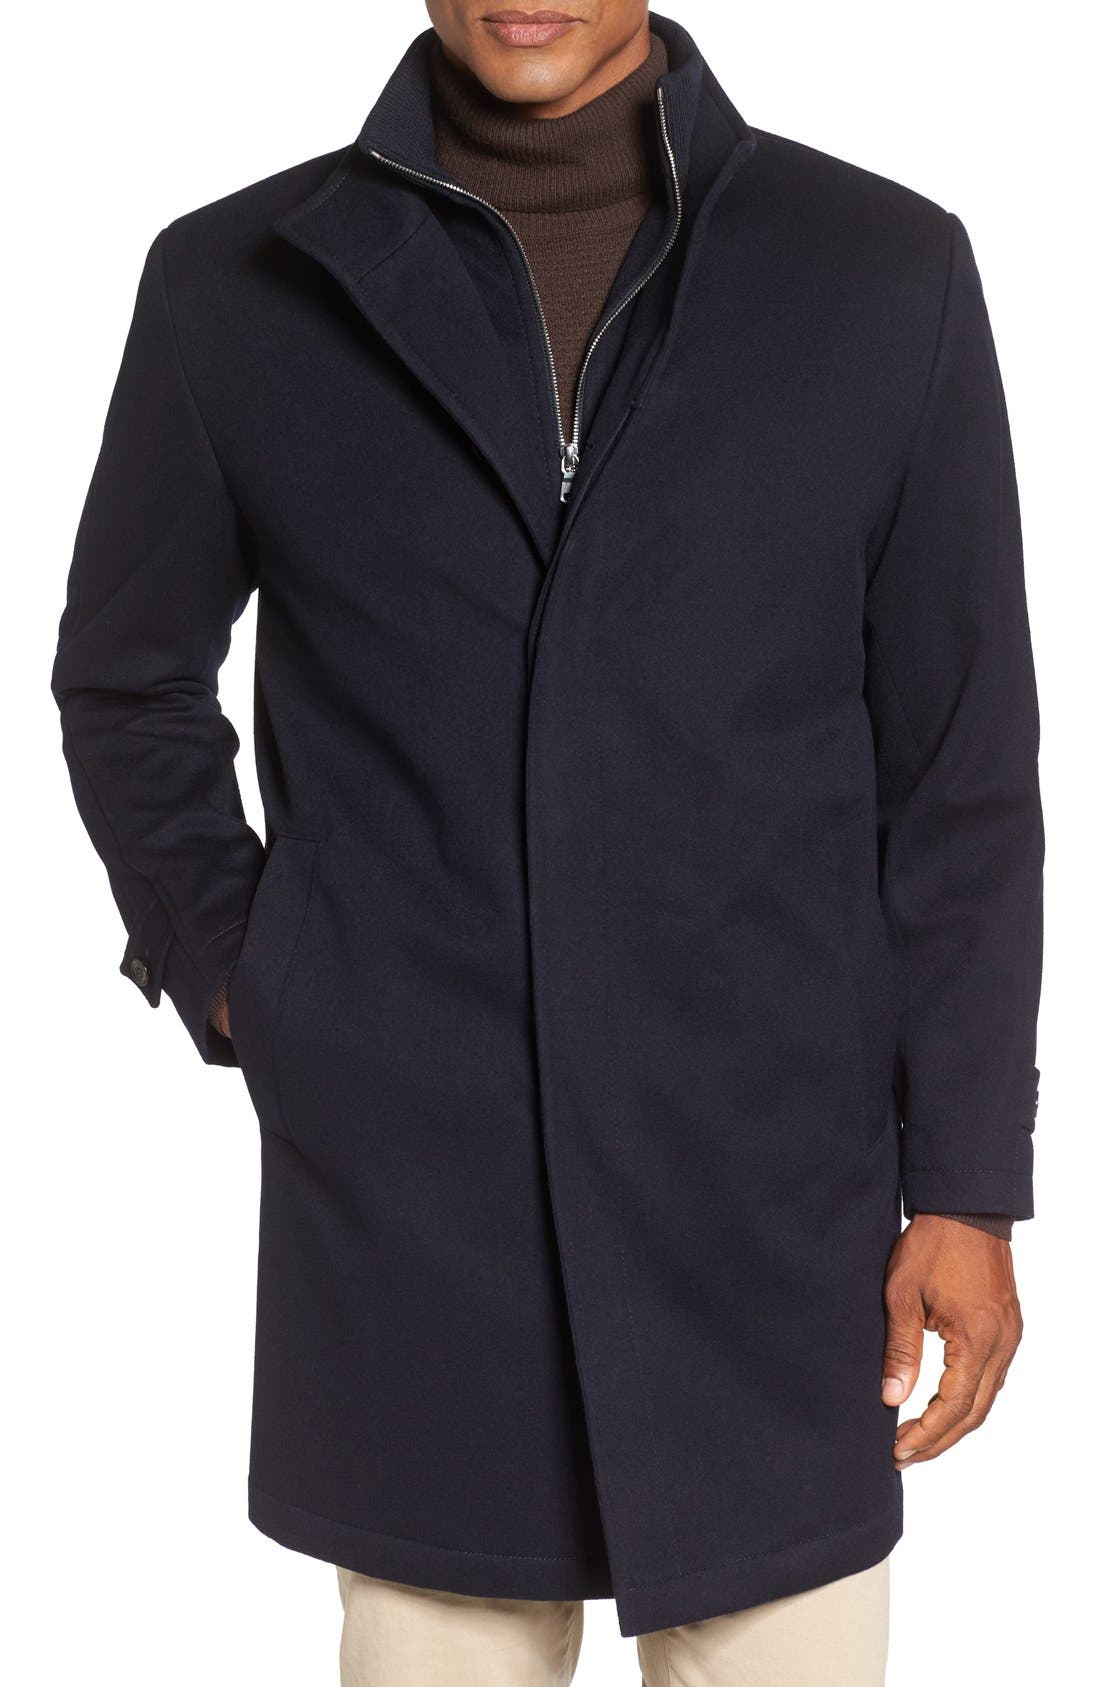 Peter Millar 'Old Sebastian' Wool Overcoat